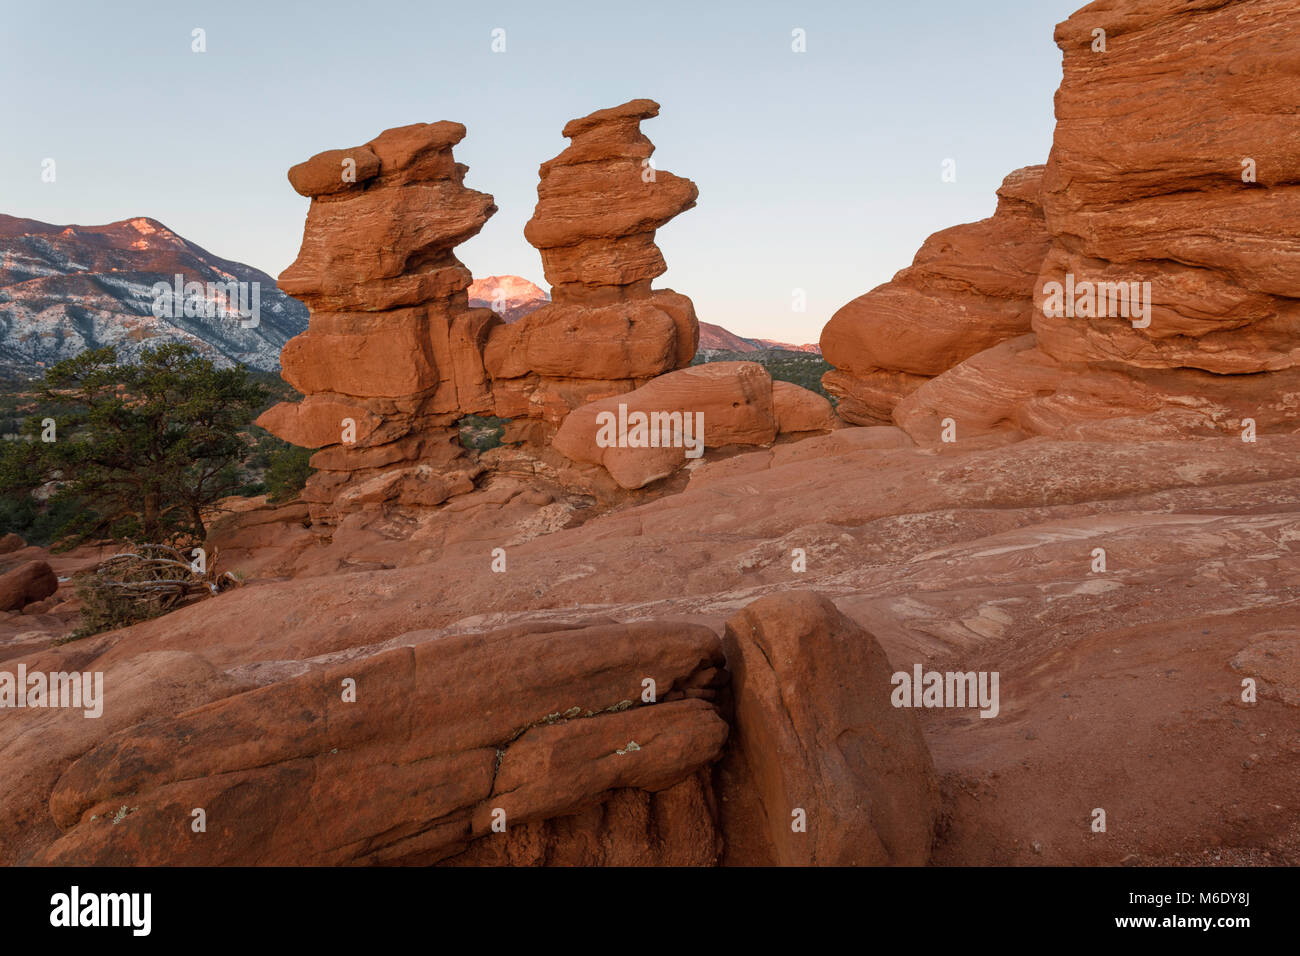 Pikes Peak is visible through the Siamese Twins rock formation at sunrise. - Stock Image